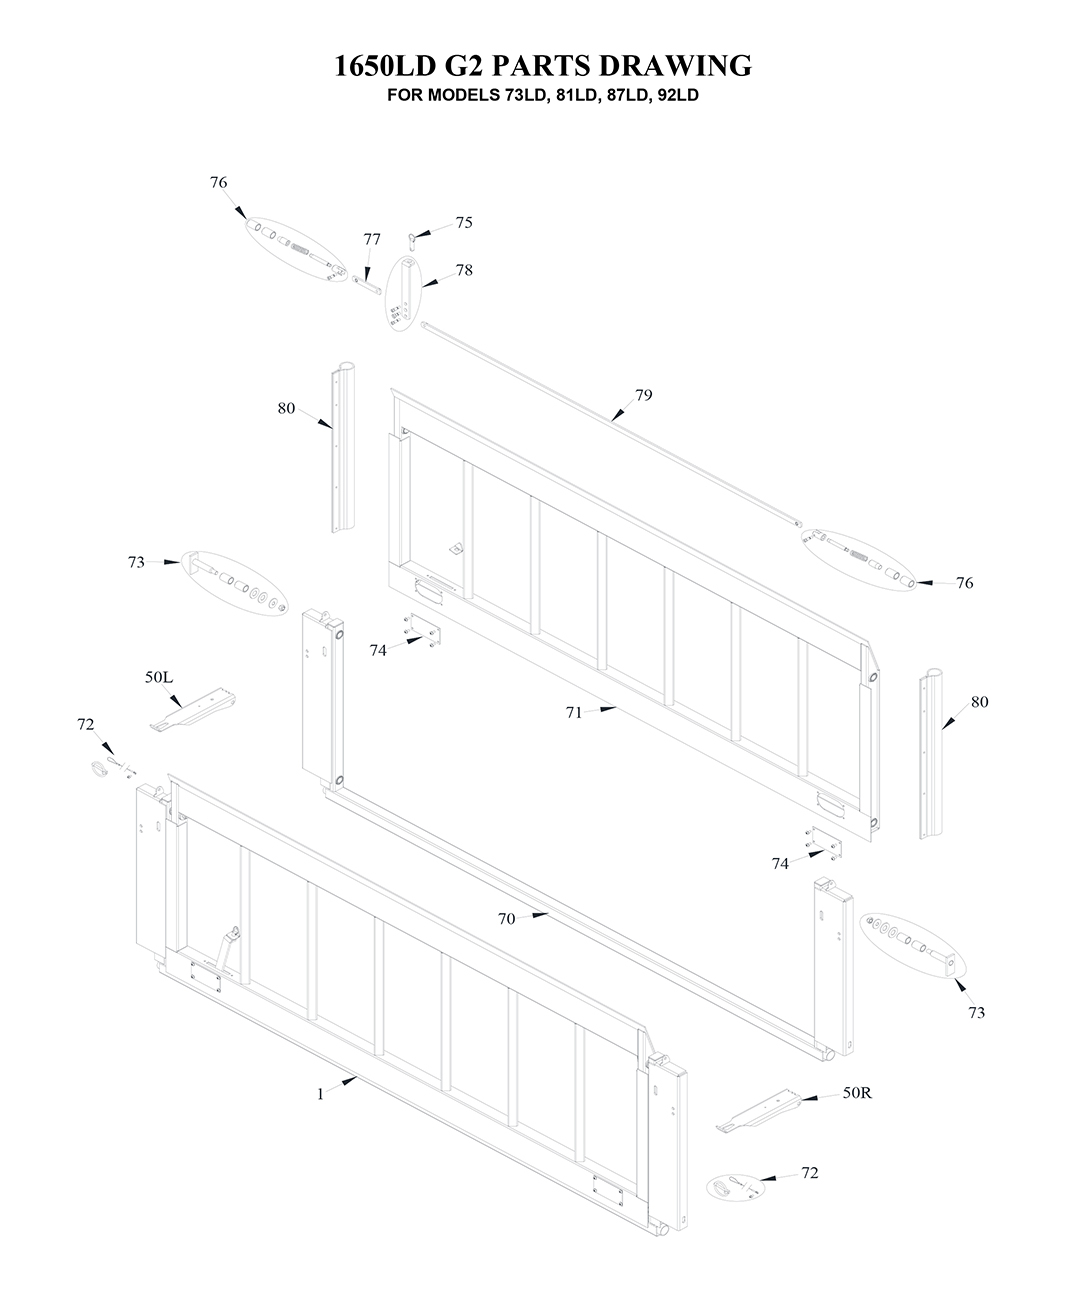 Tommy Gate G2 Series Lift-And-Dump Diagram [Flatbed, Stake, Van & Dump Body]